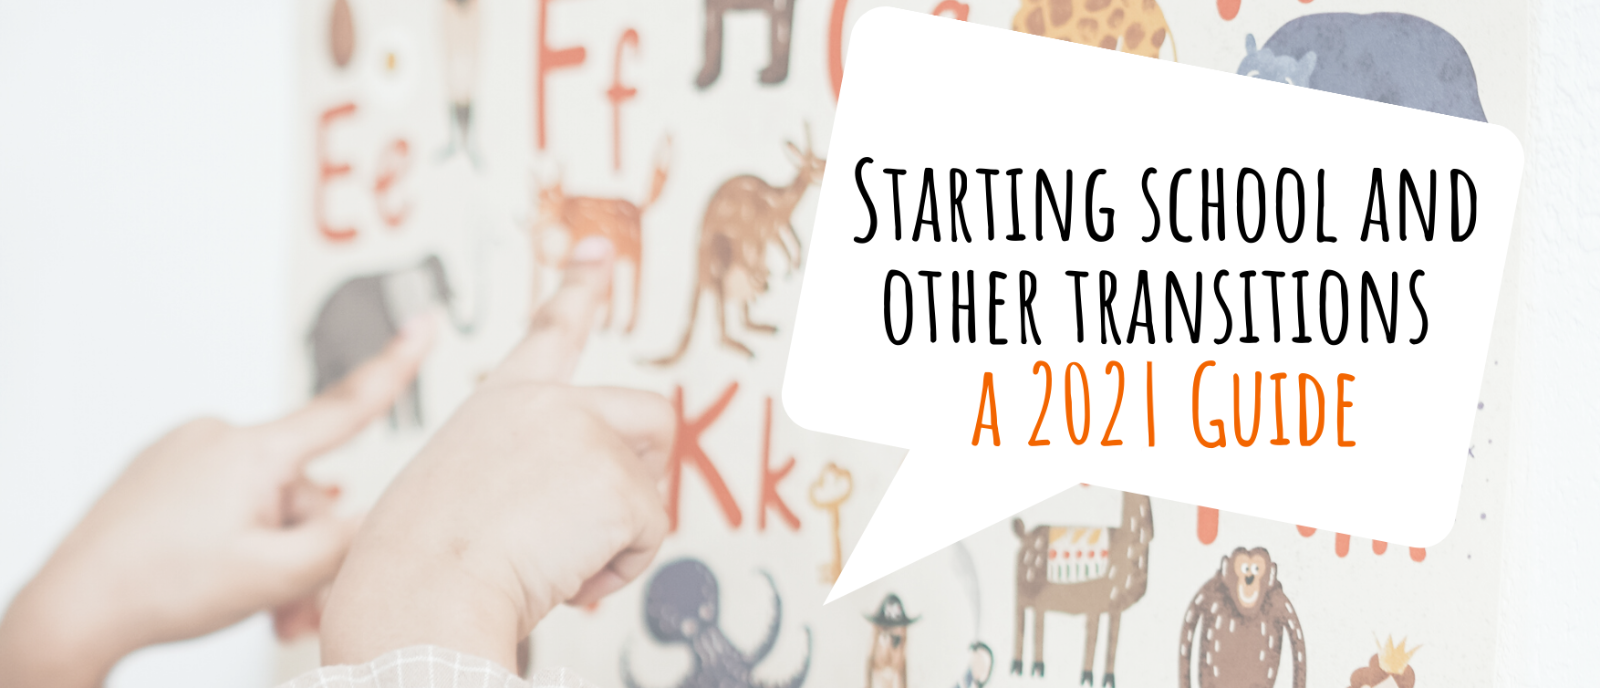 Starting school and other transitions, a 2020 guide. Click here